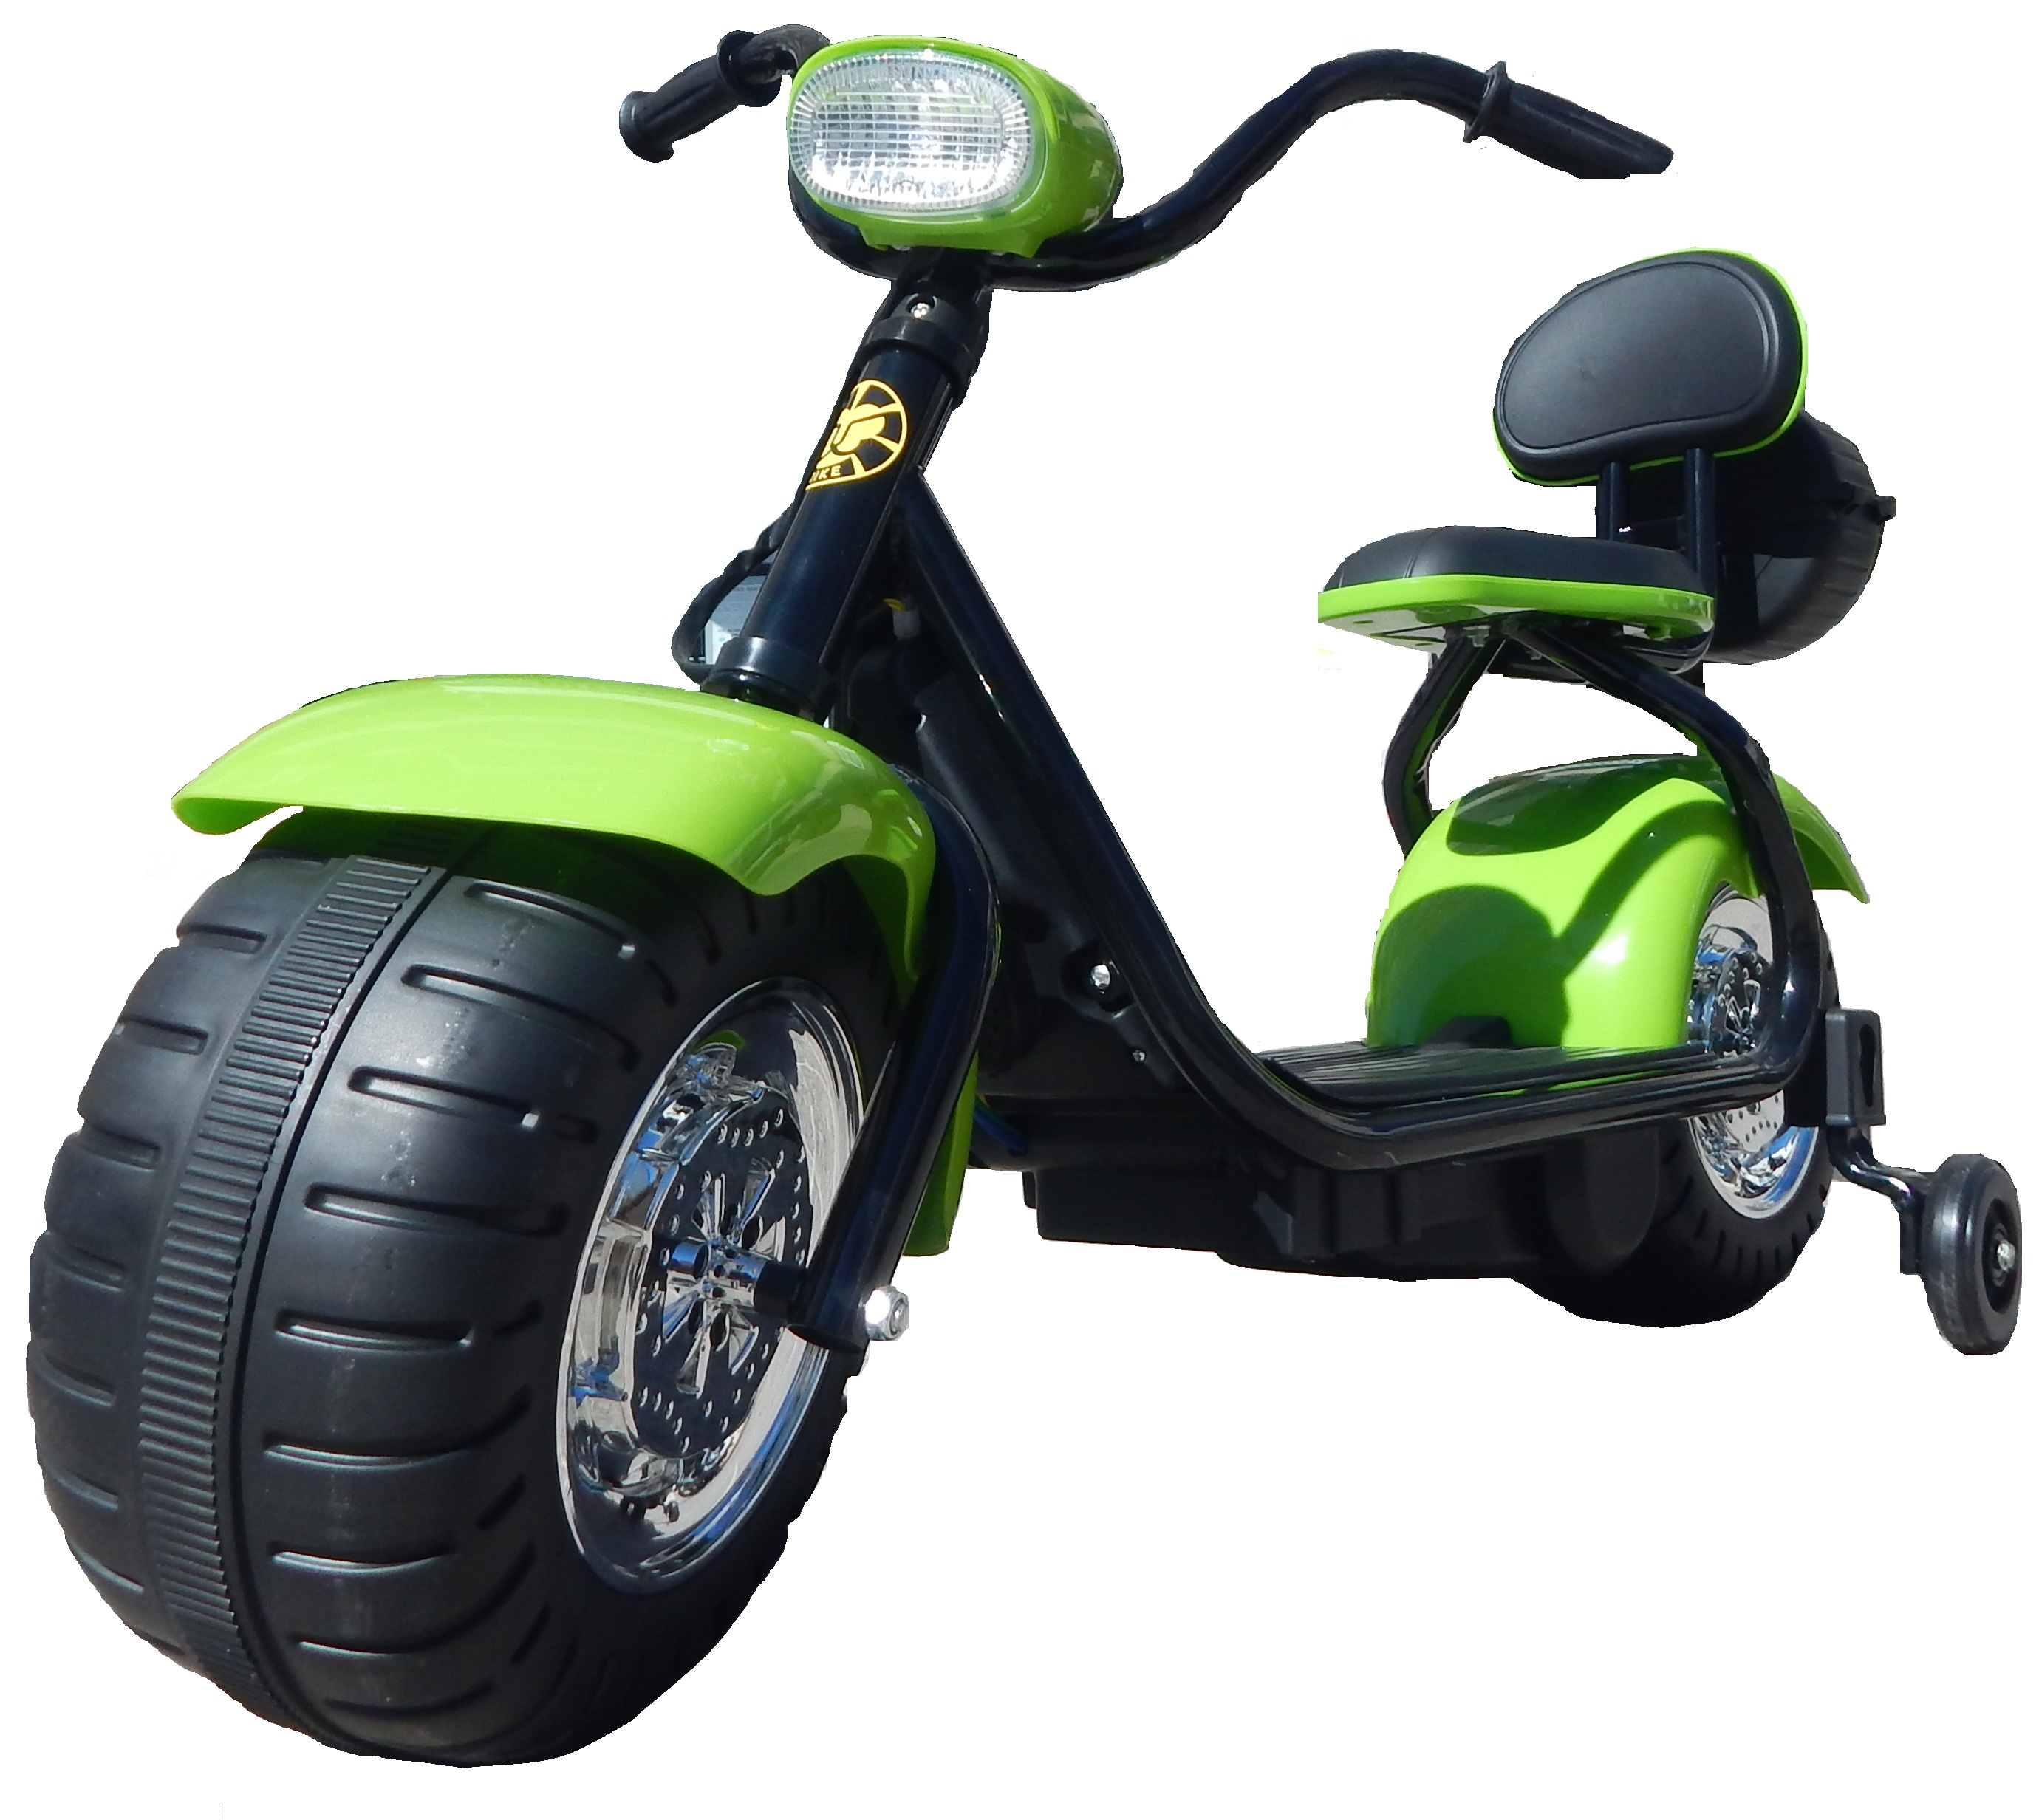 mini chopper rental sadesgo kids, que hacer en calpe, moped for kids hire a chopper